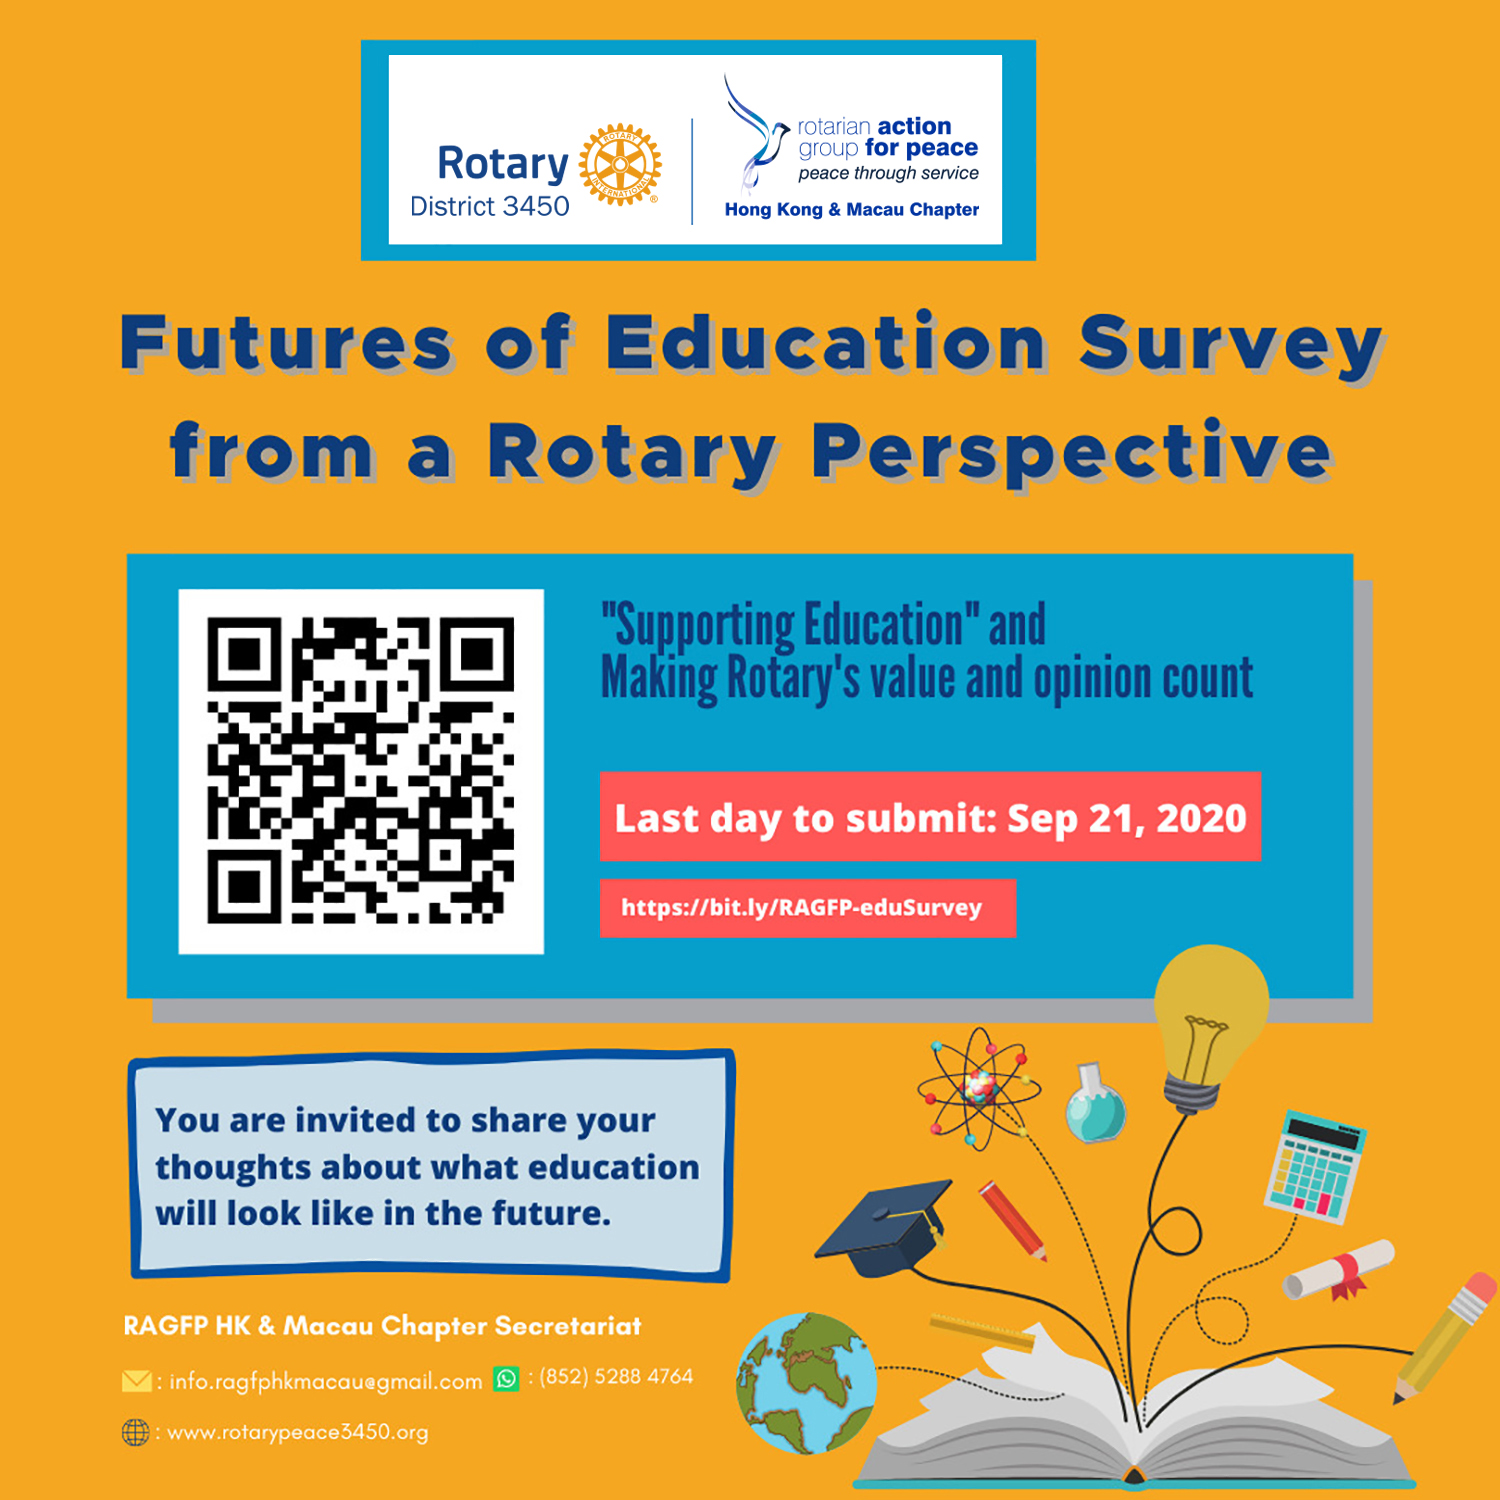 """Futures of Education from a Rotary Perspective"" Survey Launched By PP Mitzi Leung, Convenor, Rotary Action Group for Peace Hong Kong & Macau Chapter"